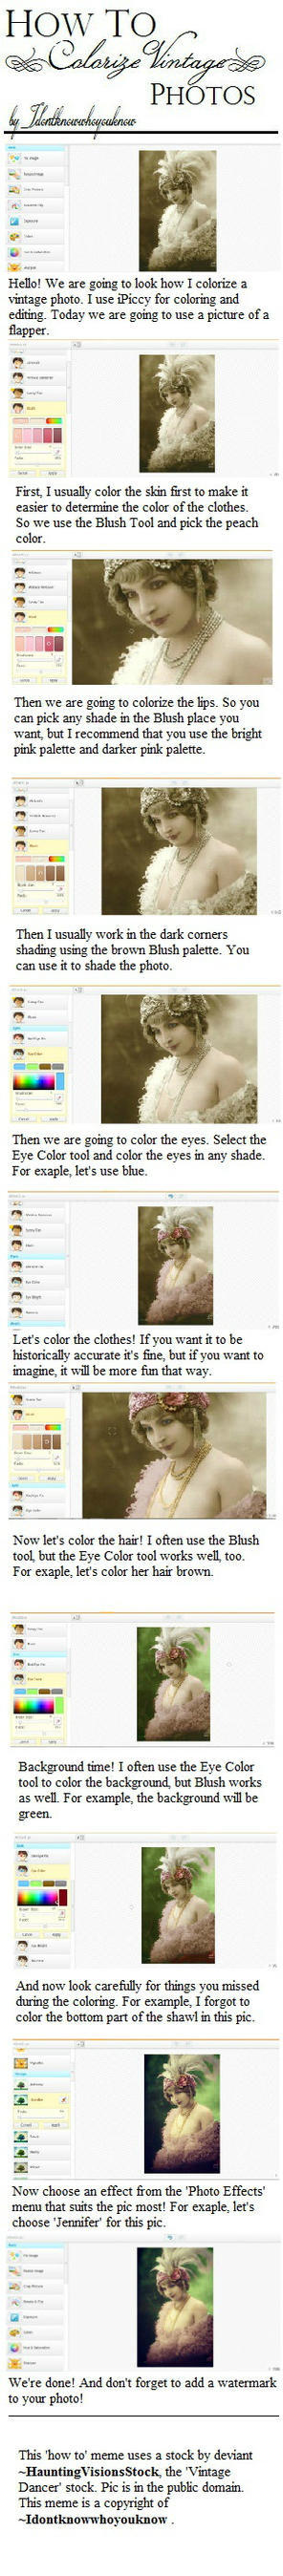 How To Colorize A Vintage Photo Tutorial by Idontknowwhoyouknow